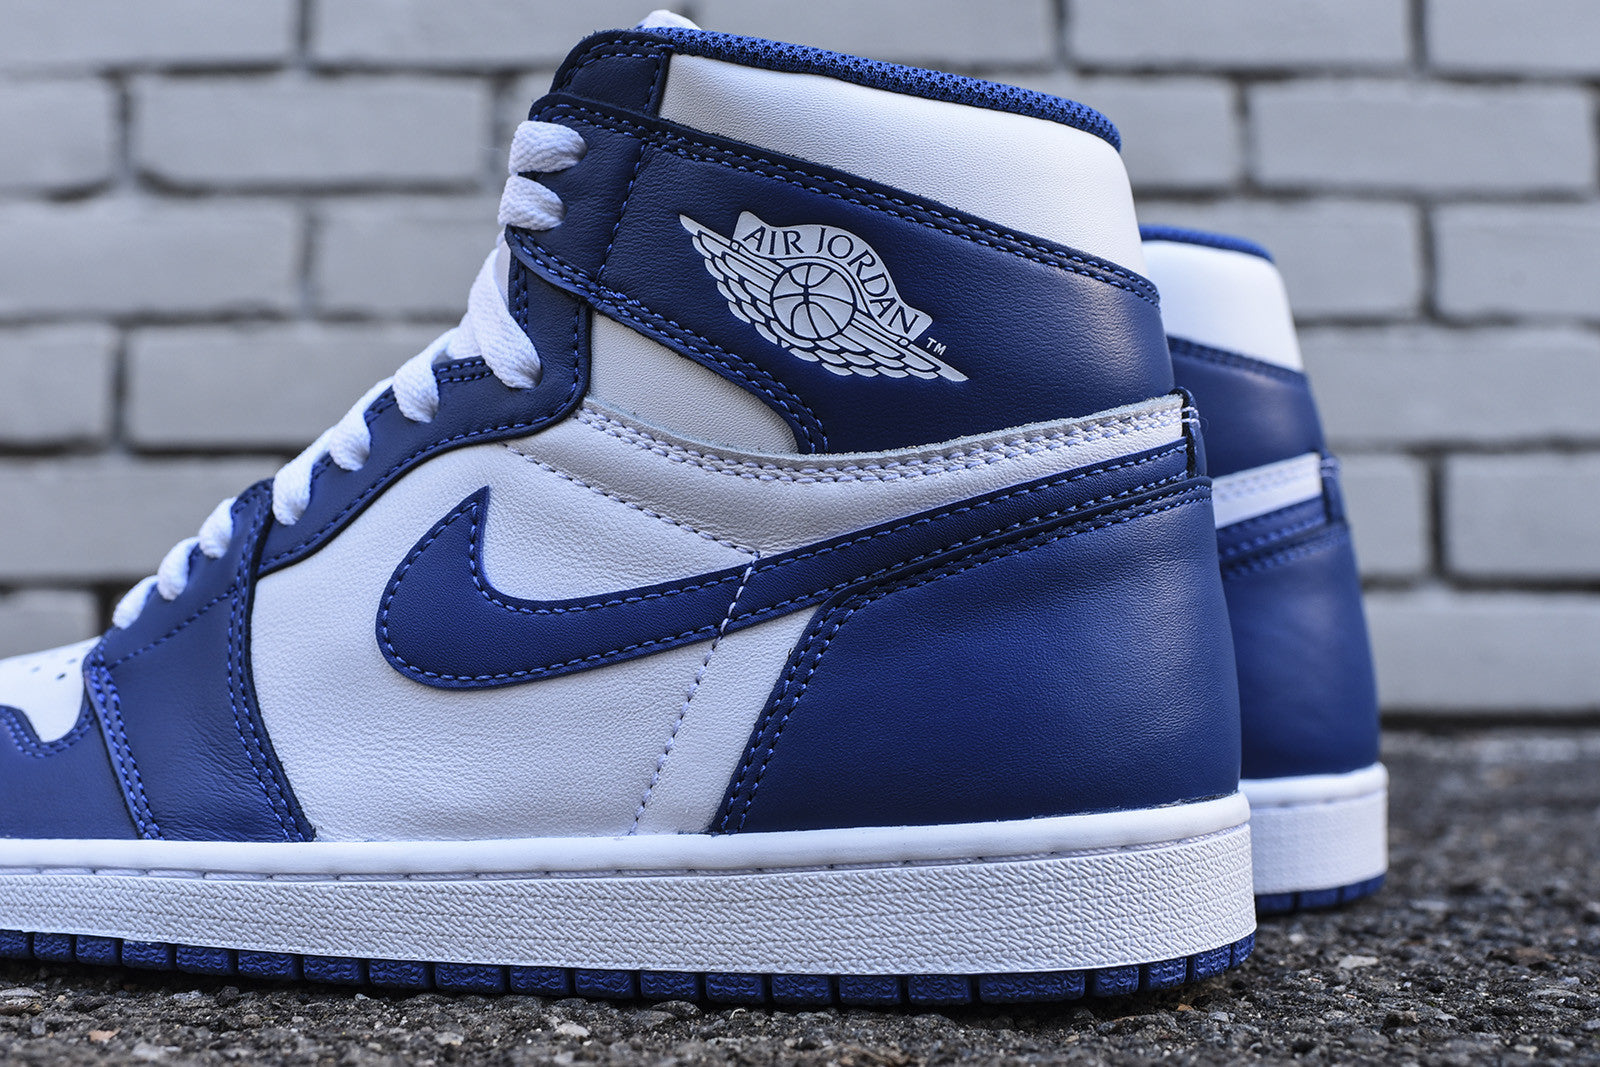 Nike Air Jordan 1 Retro High OG - White / Storm Blue